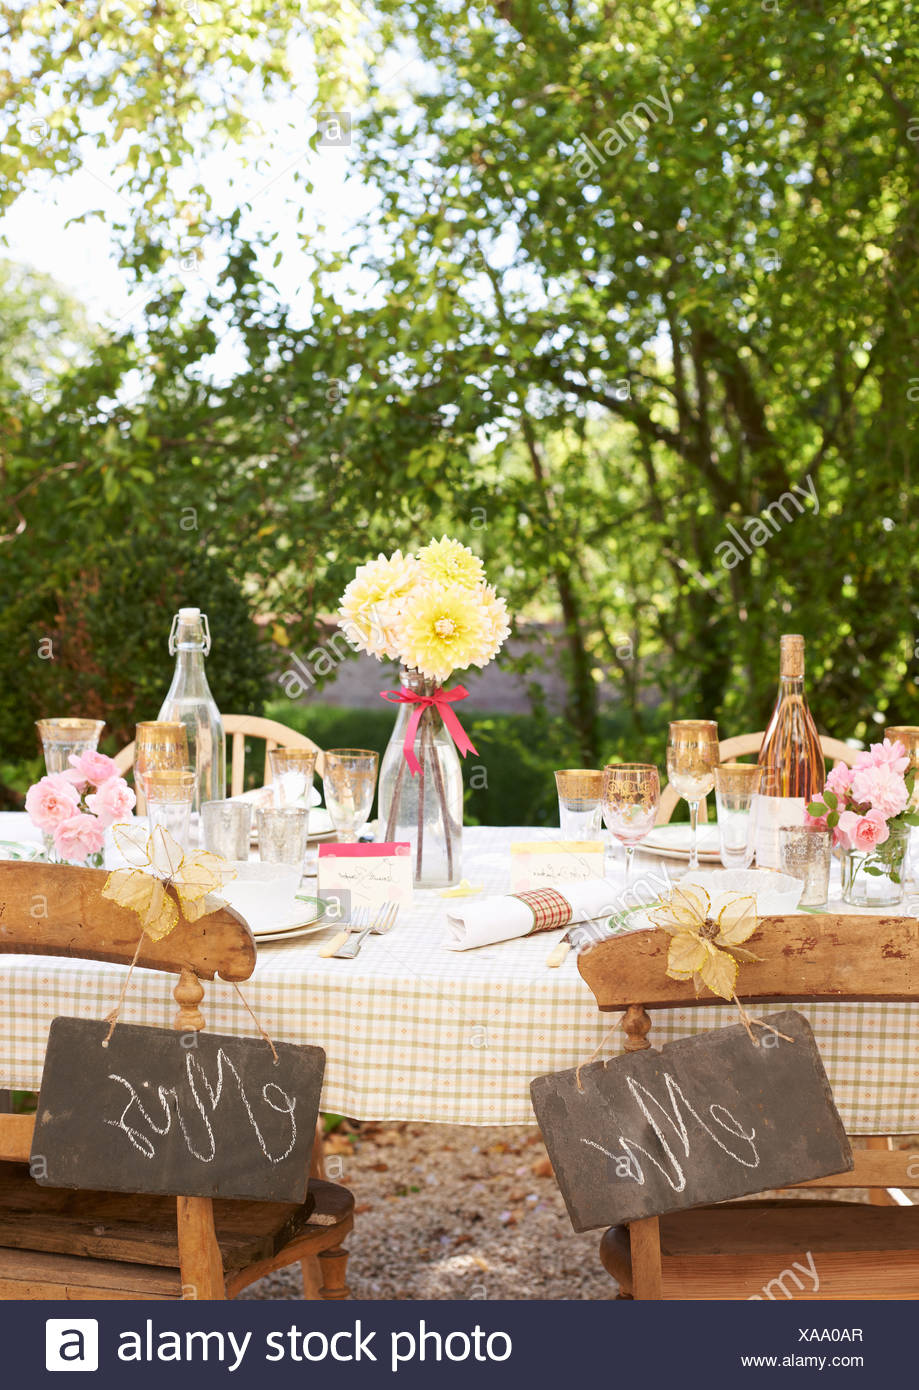 Table Setting For Outdoor Wedding Reception Stock Photo 281732271